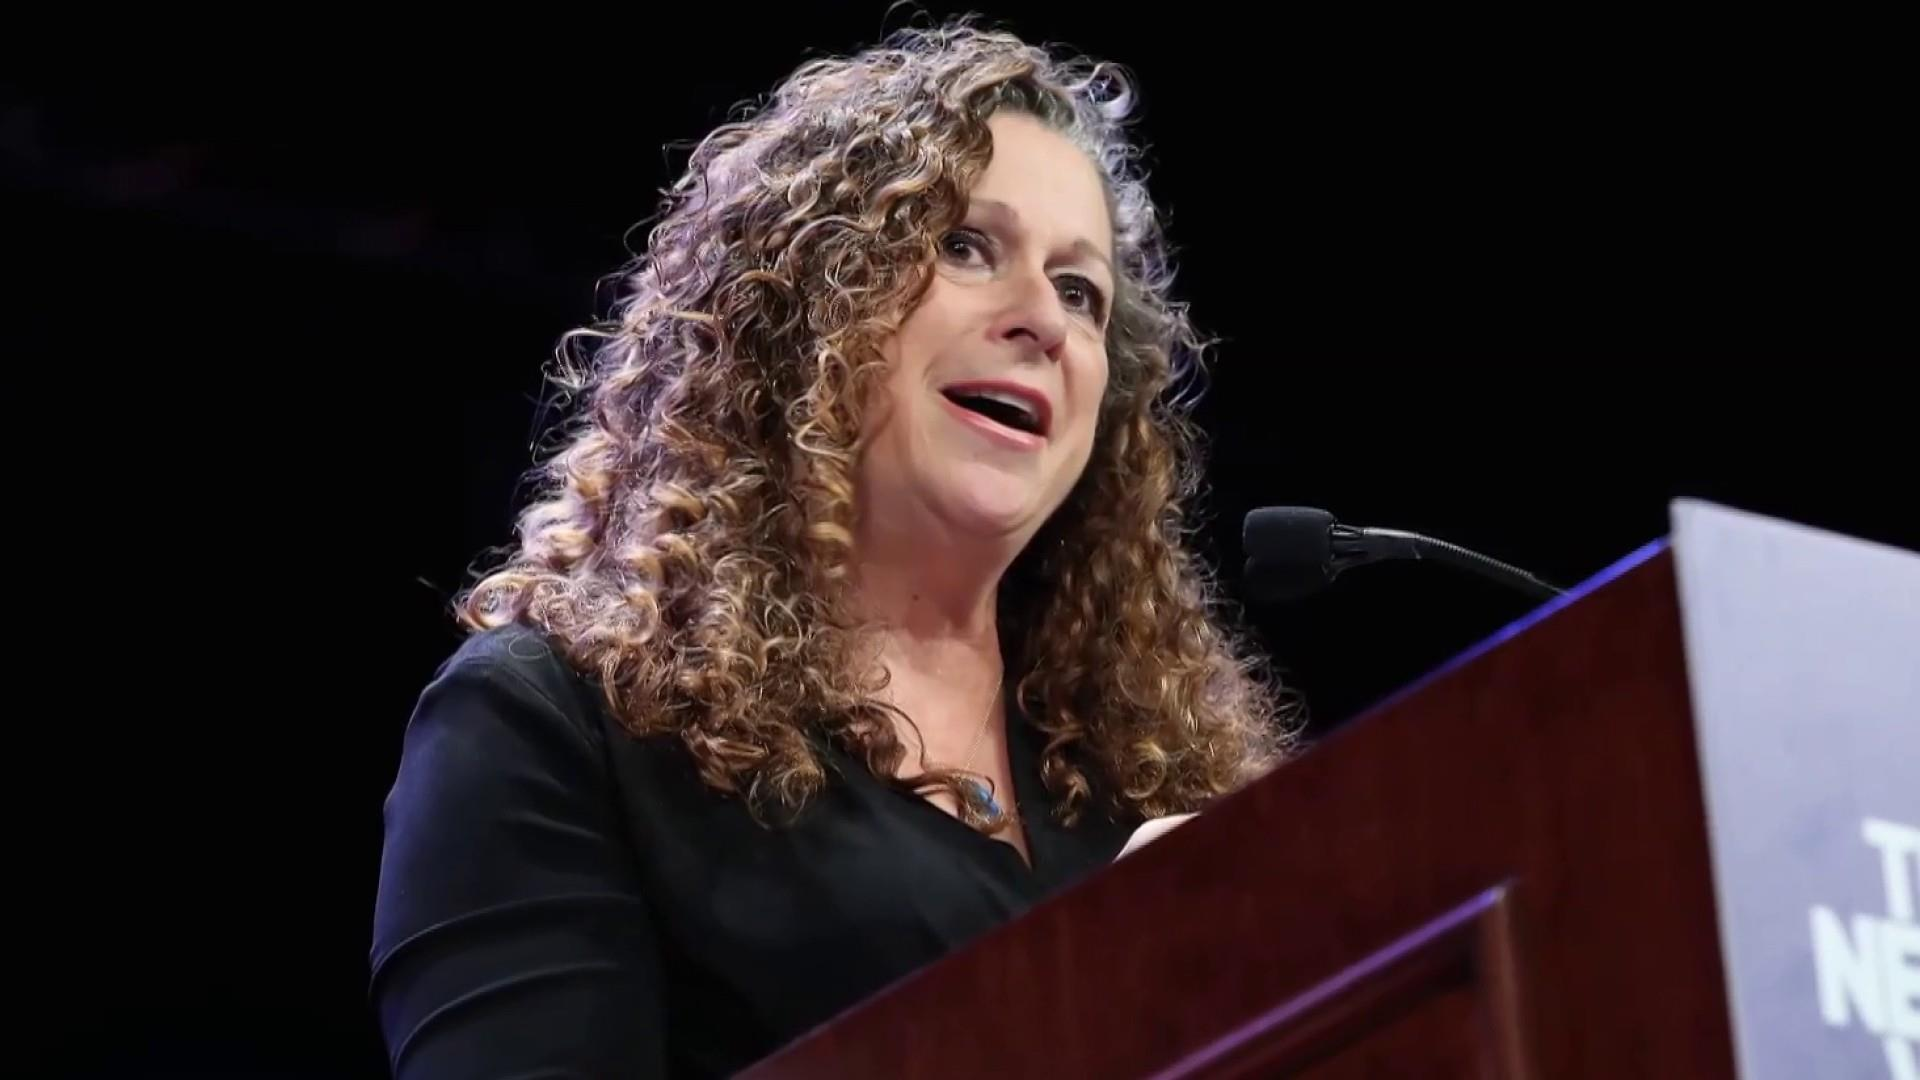 Abigail Disney speaks out against Bob Iger's $65.6M compensation